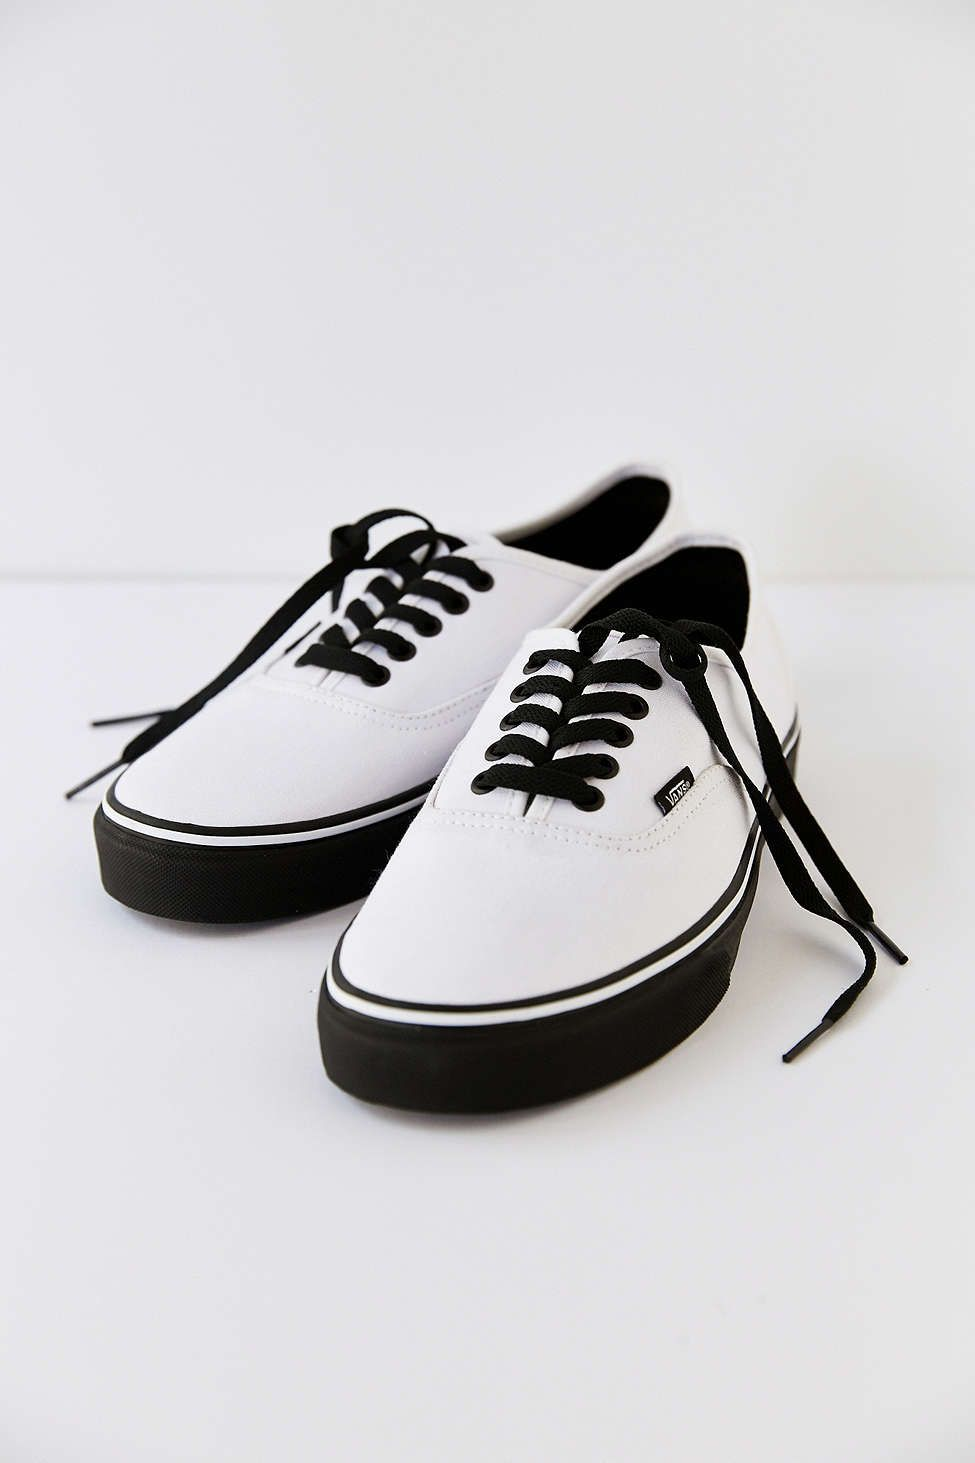 9b30081e16 Vans Authentic Black Sole Men s Sneaker